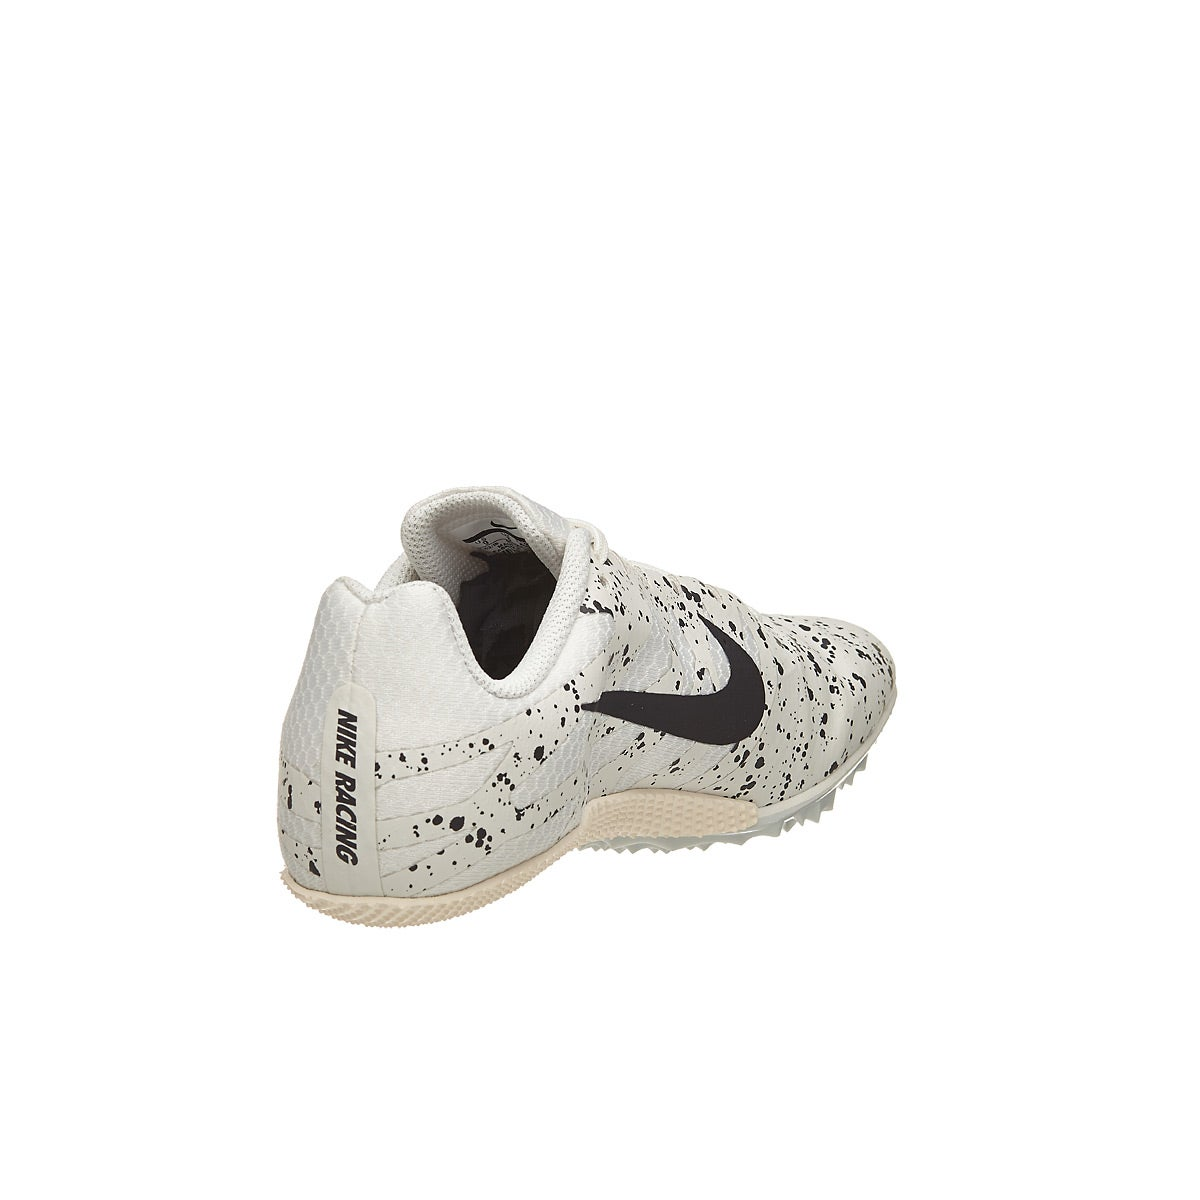 1a49355bb1c1 Nike Zoom Rival S 9 Kids Track Shoes Phantom/Oil Grey 360° View | Running  Warehouse.